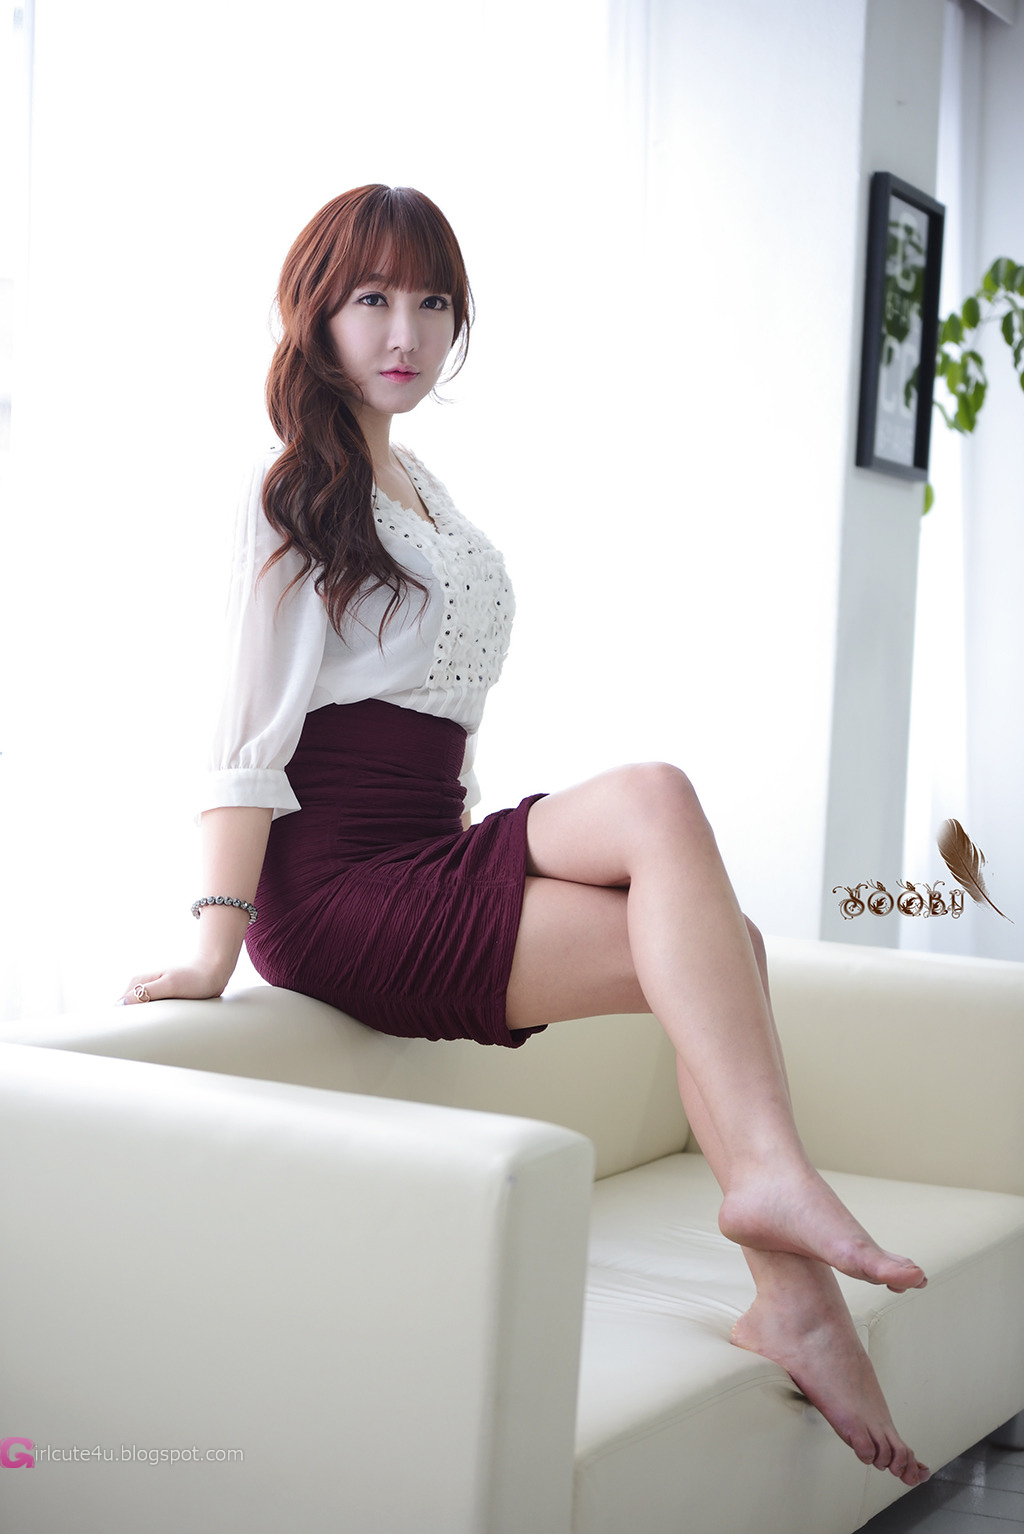 Very Cute Asian Girl: Xxx Nude Girls: Elegant Yoon Seul